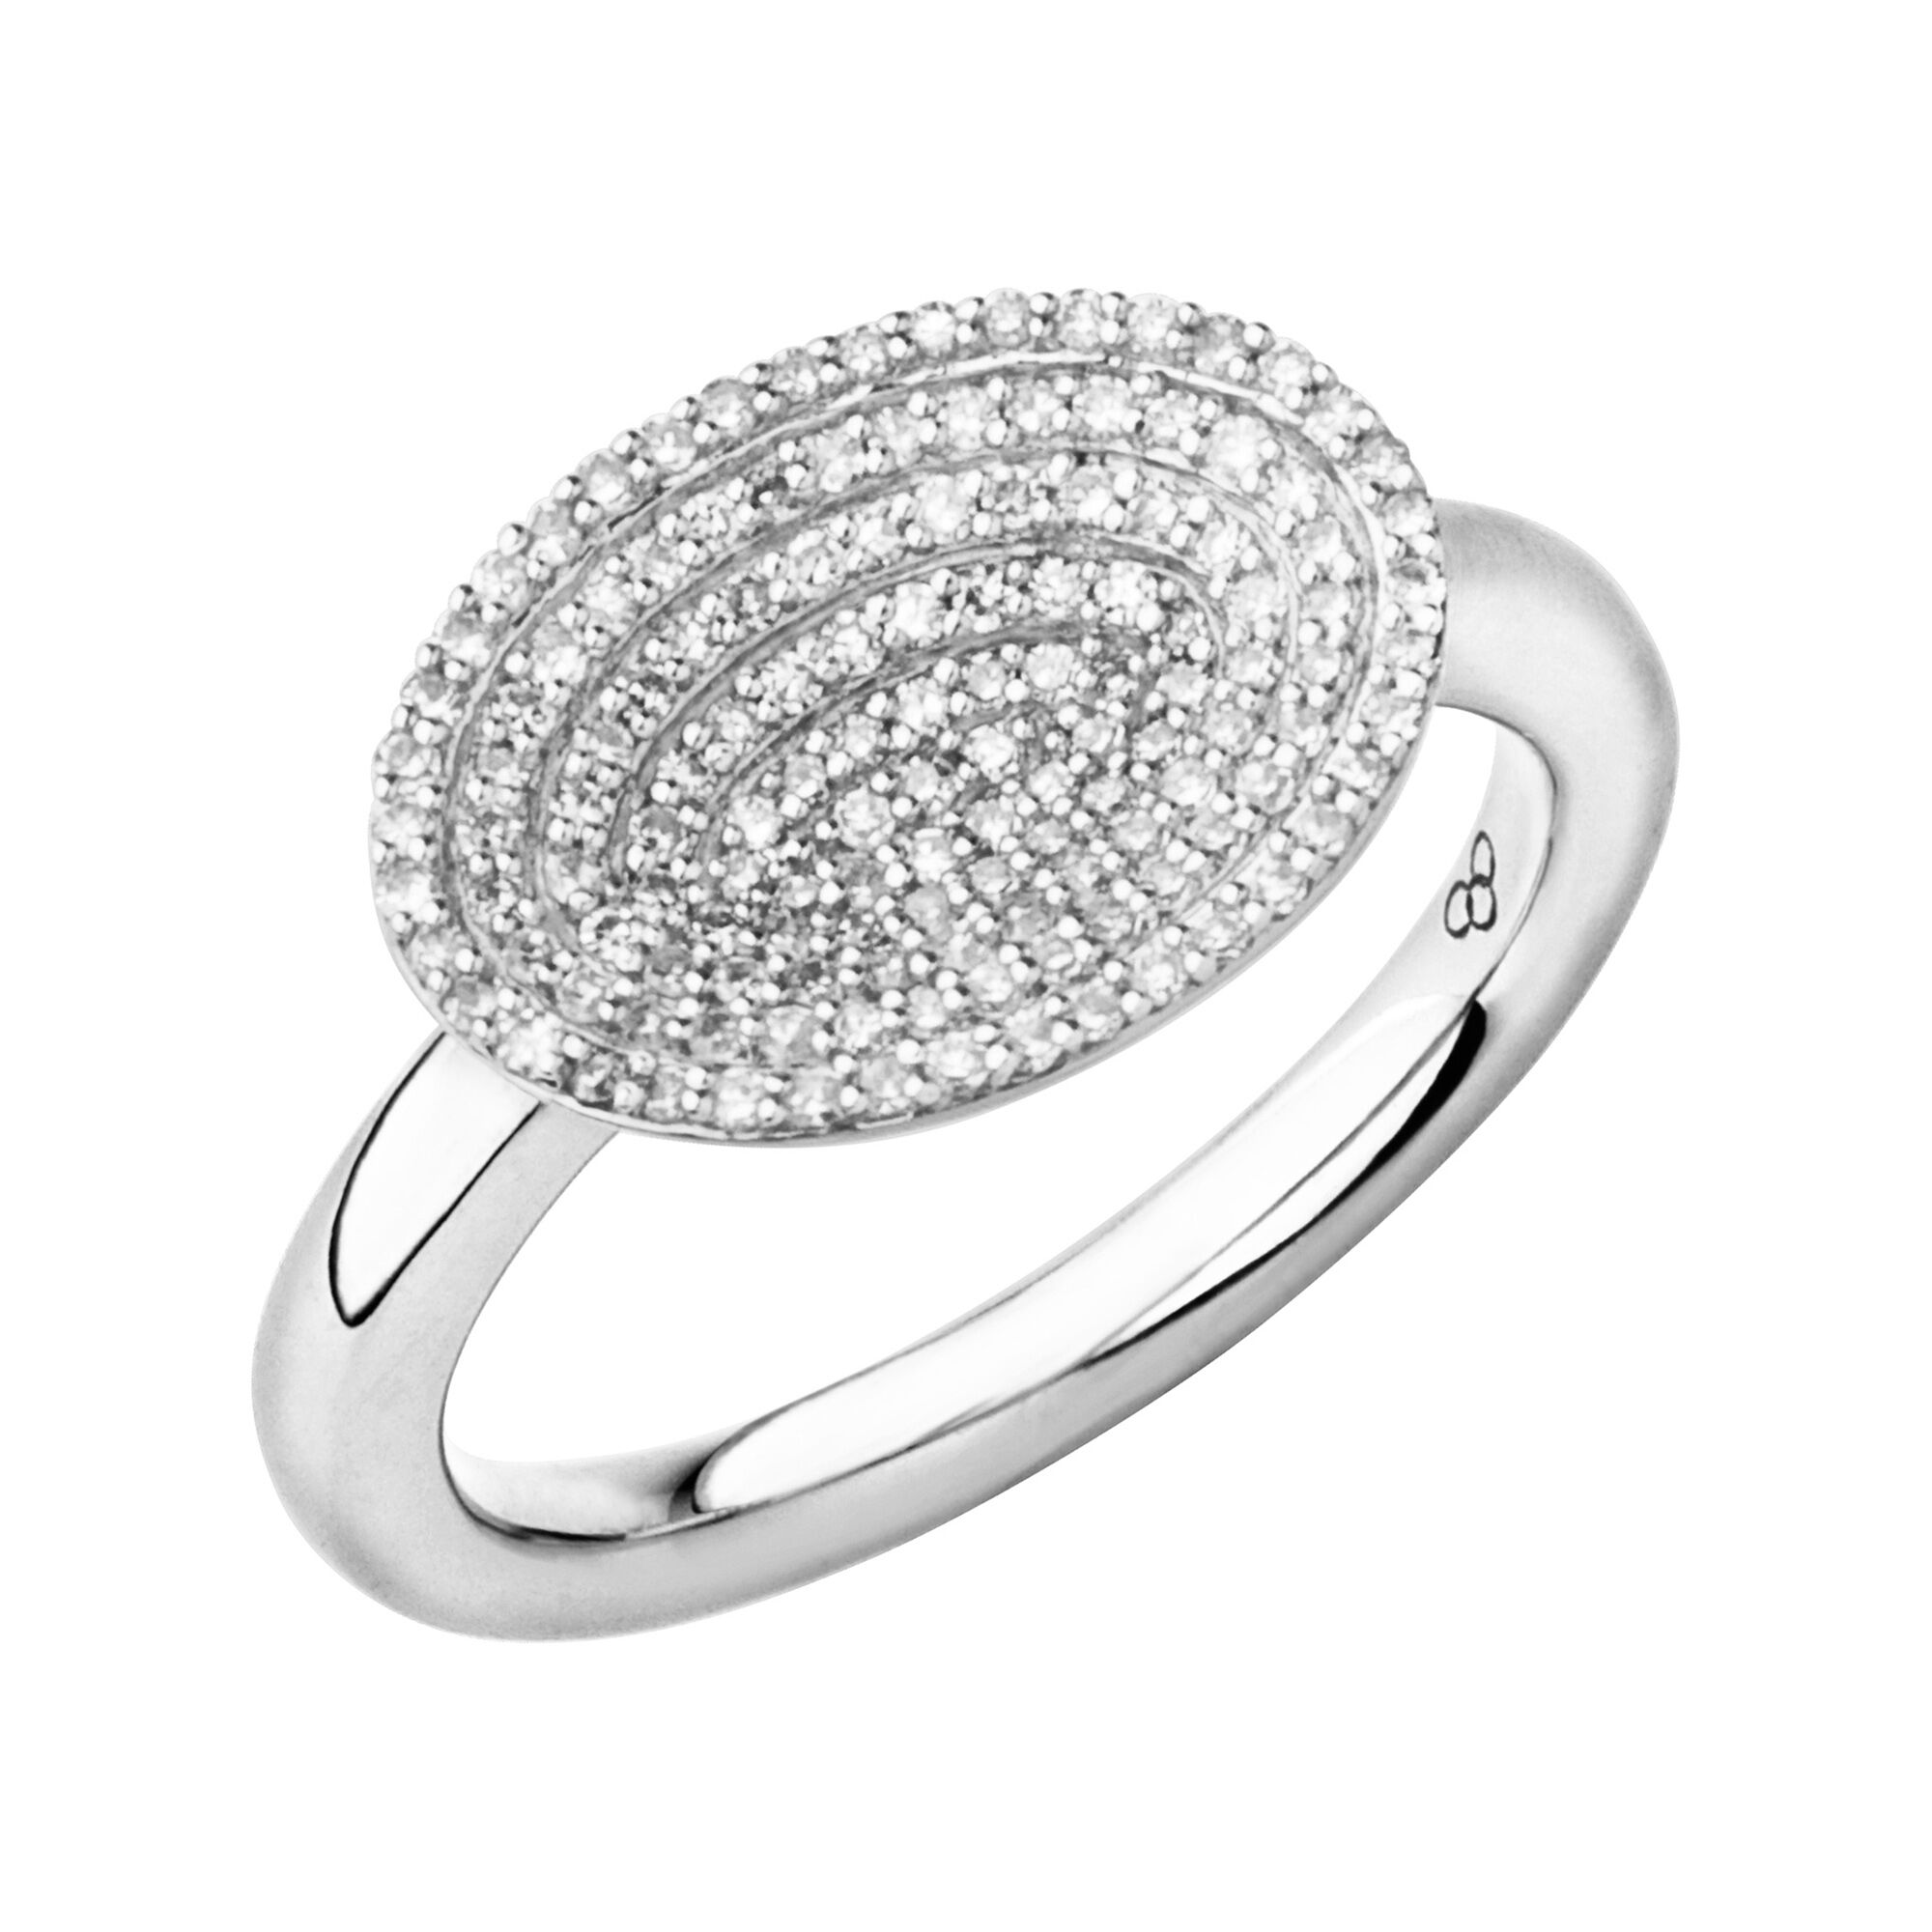 siena products band r baguette nordstrom jewellery jewelry ring diamond